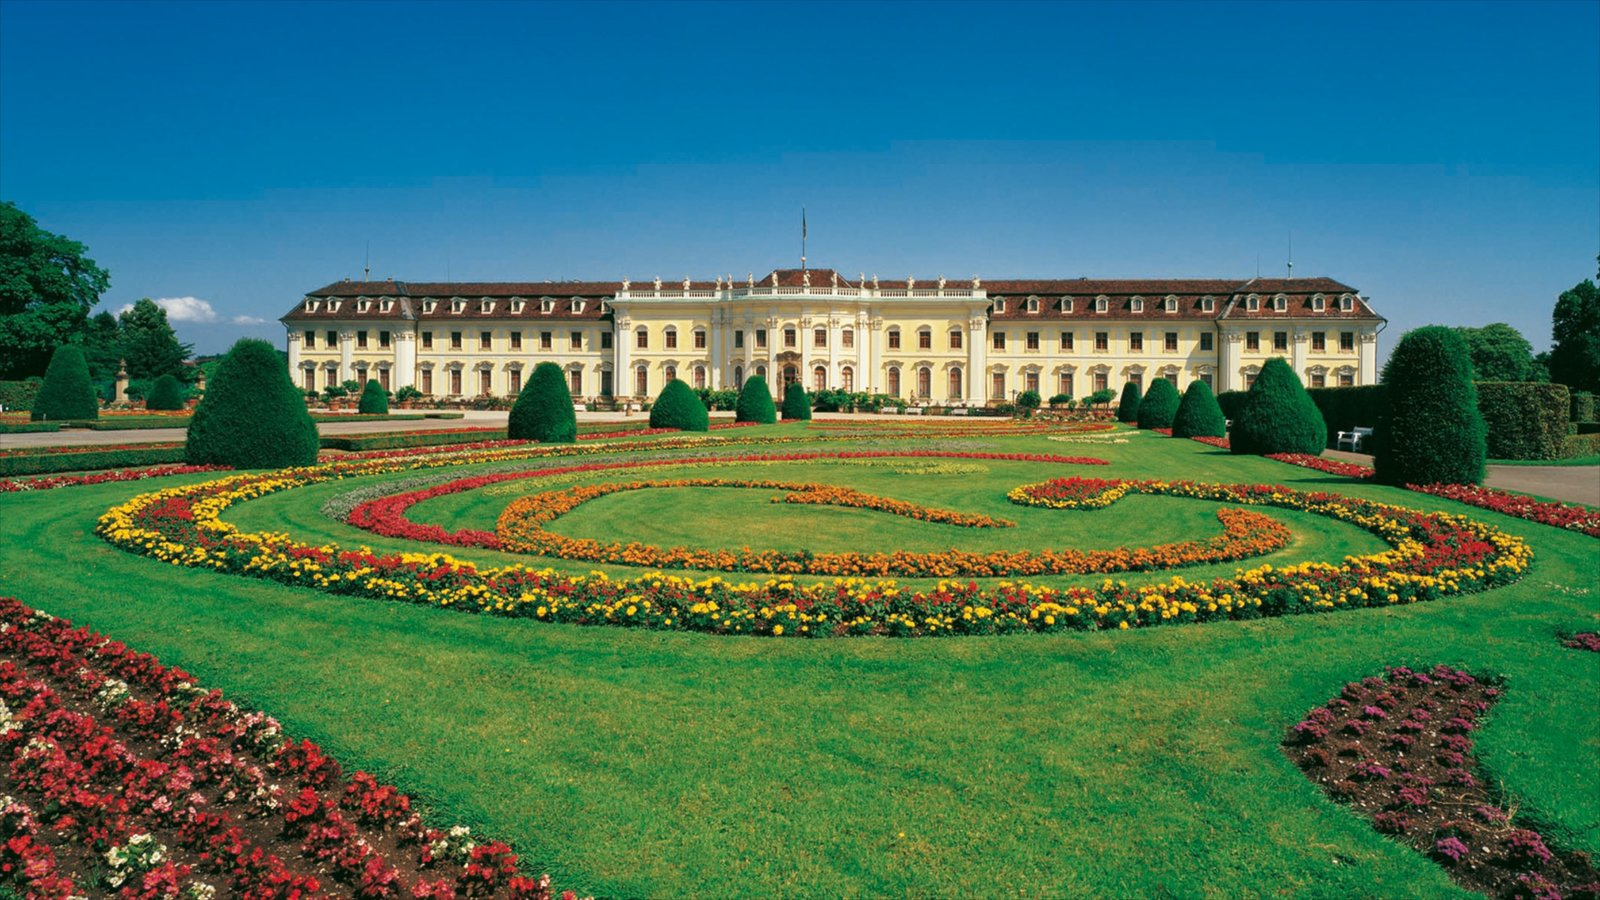 Stuttgart Ludwigsburg Ludwigsburg Palace Pictures View Photos And Images Of